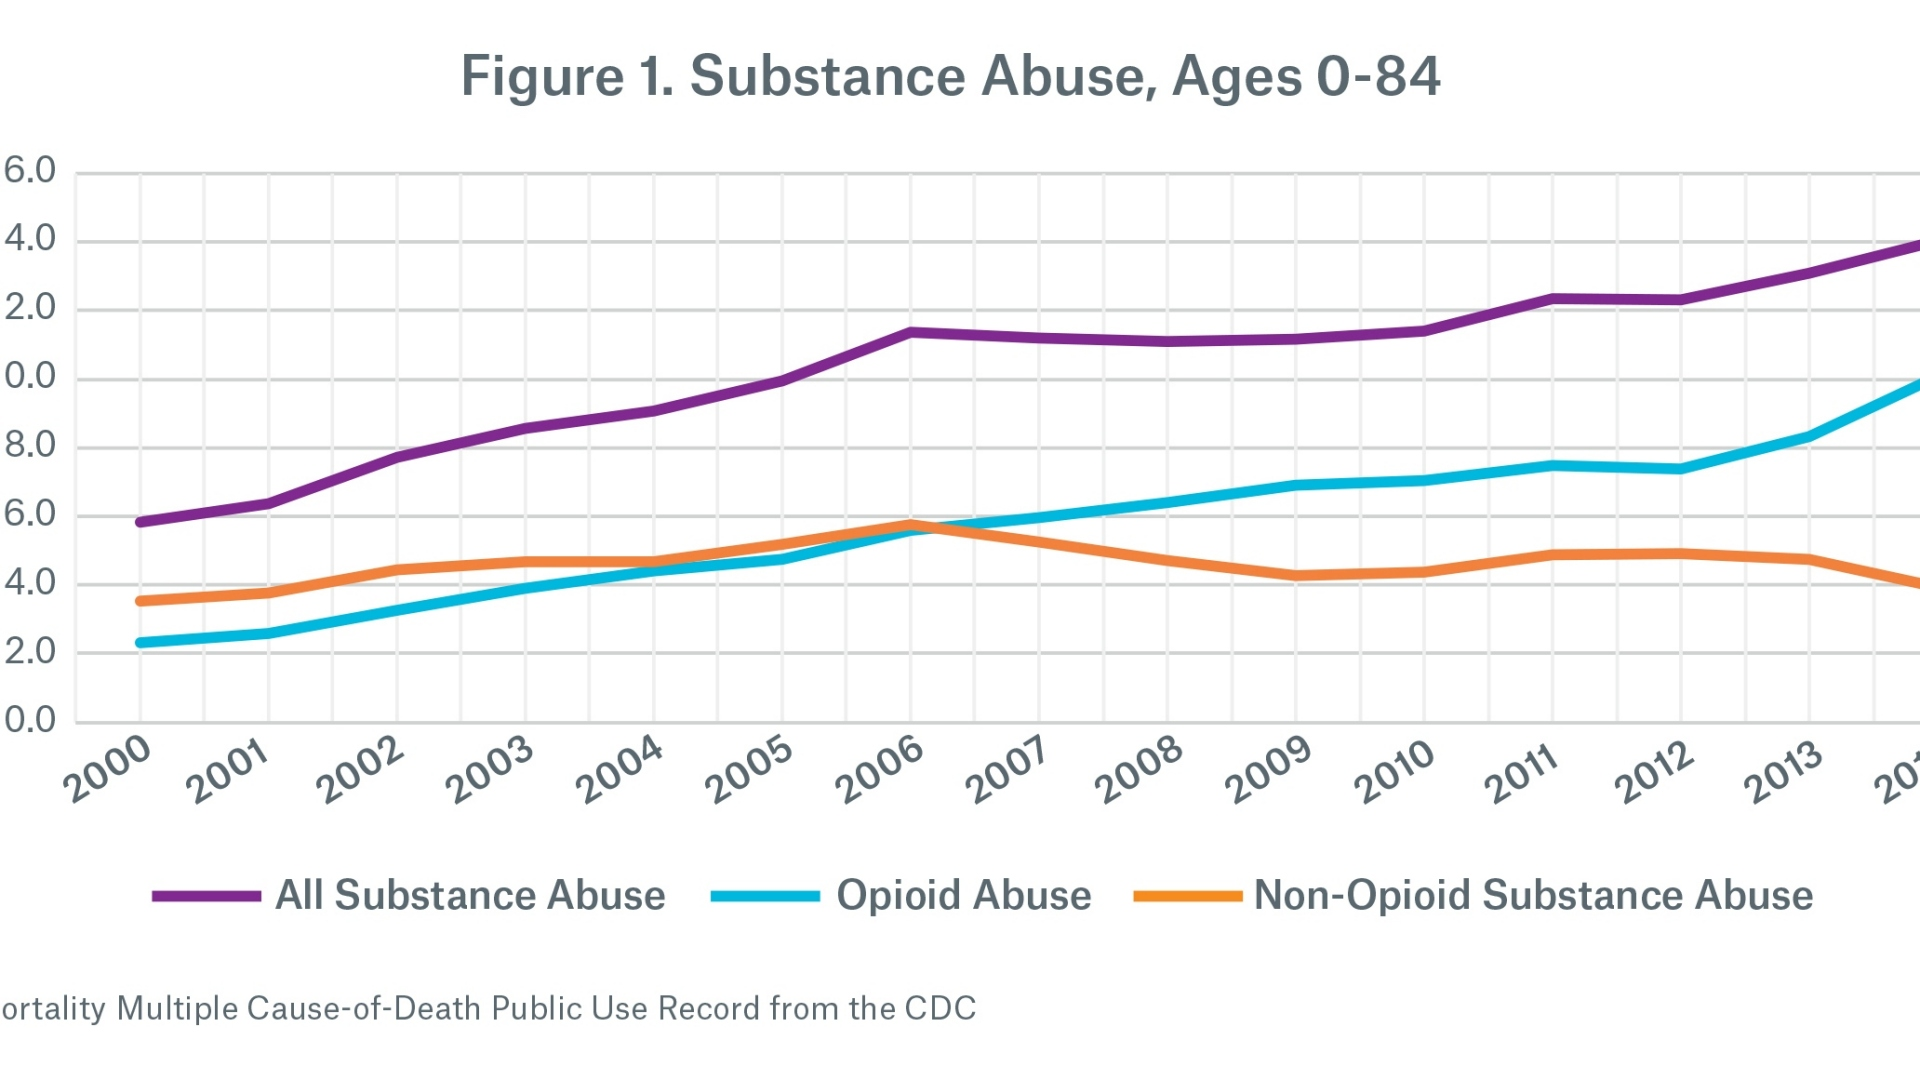 Graph of substance abuse rates in general population.